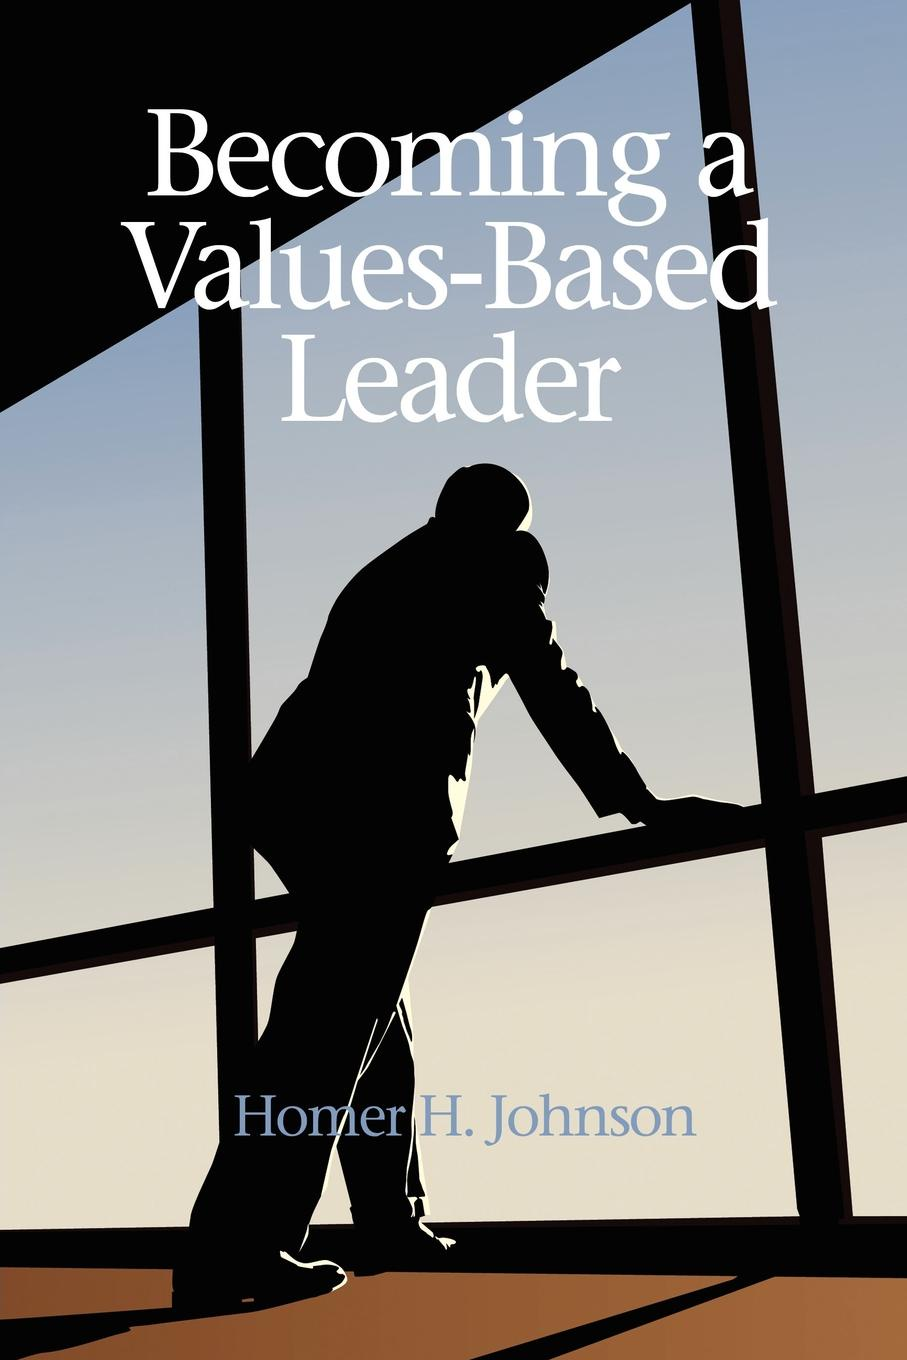 Фото - Homer H. Johnson Becoming a Values-Based Leader harry kraemer m from values to action the four principles of values based leadership isbn 9781118037164